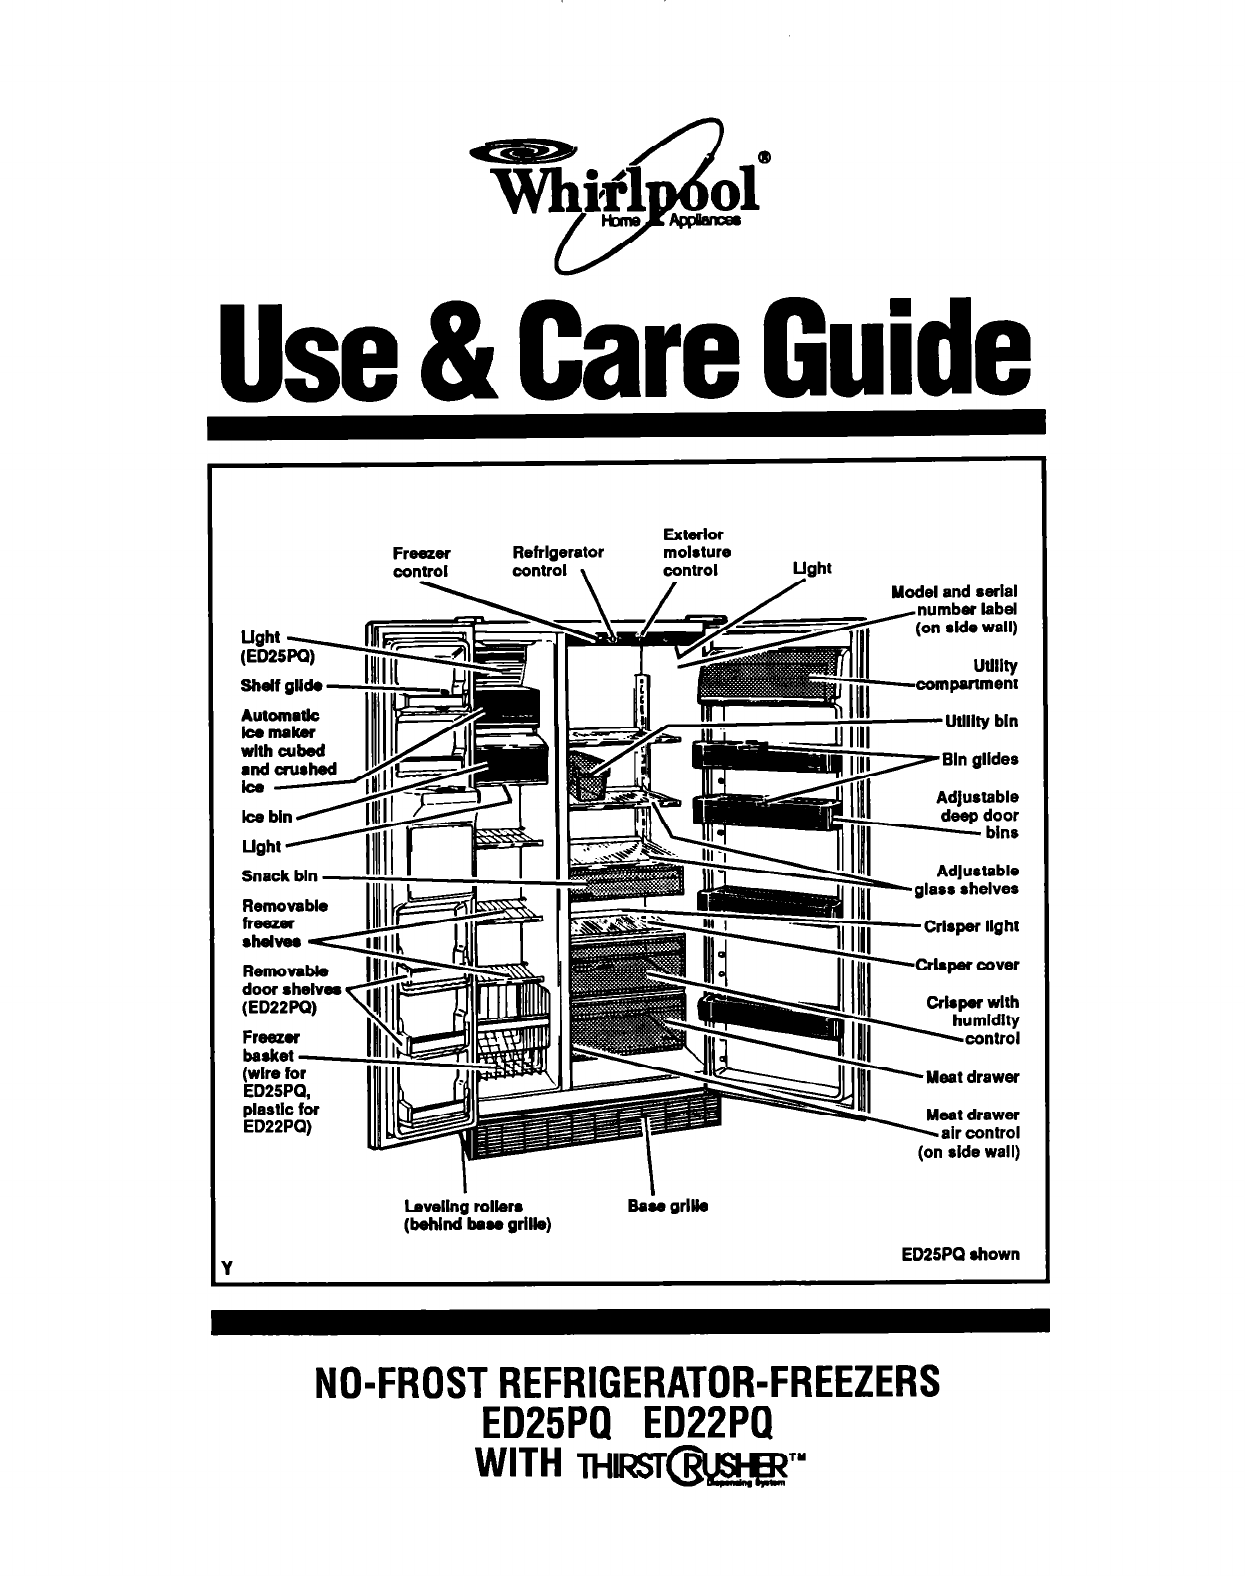 Subzero Refridgerator And Freezer Parts And Manuals Manual Guide